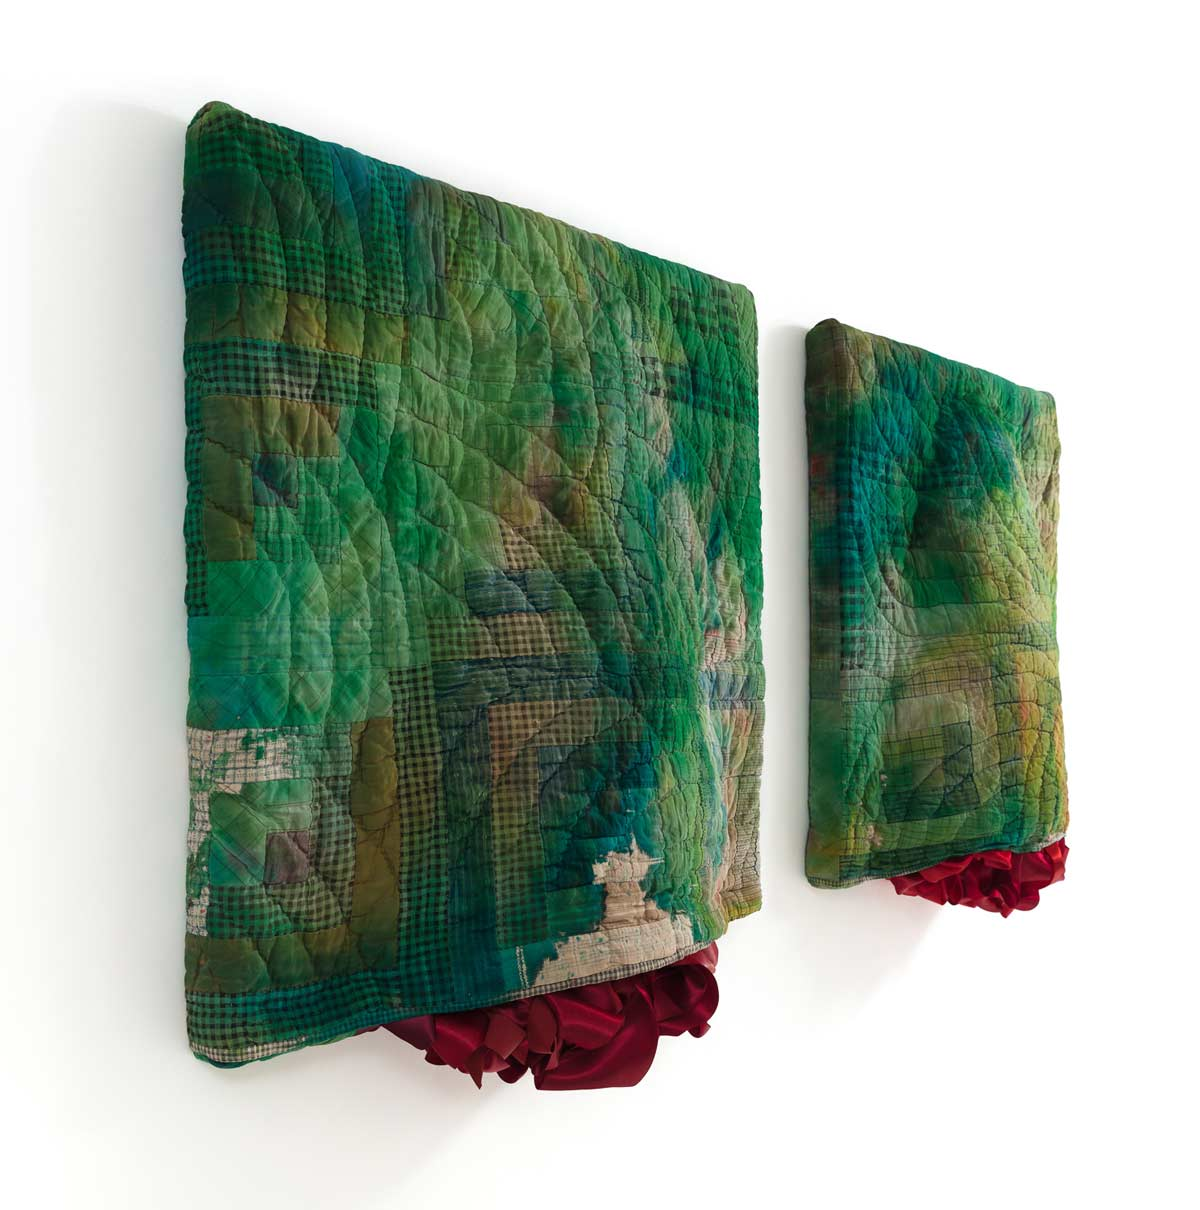 Green Swells (side view), 28 x 56 x 5 inches, antique quilts, ribbon and mixed media, 2017